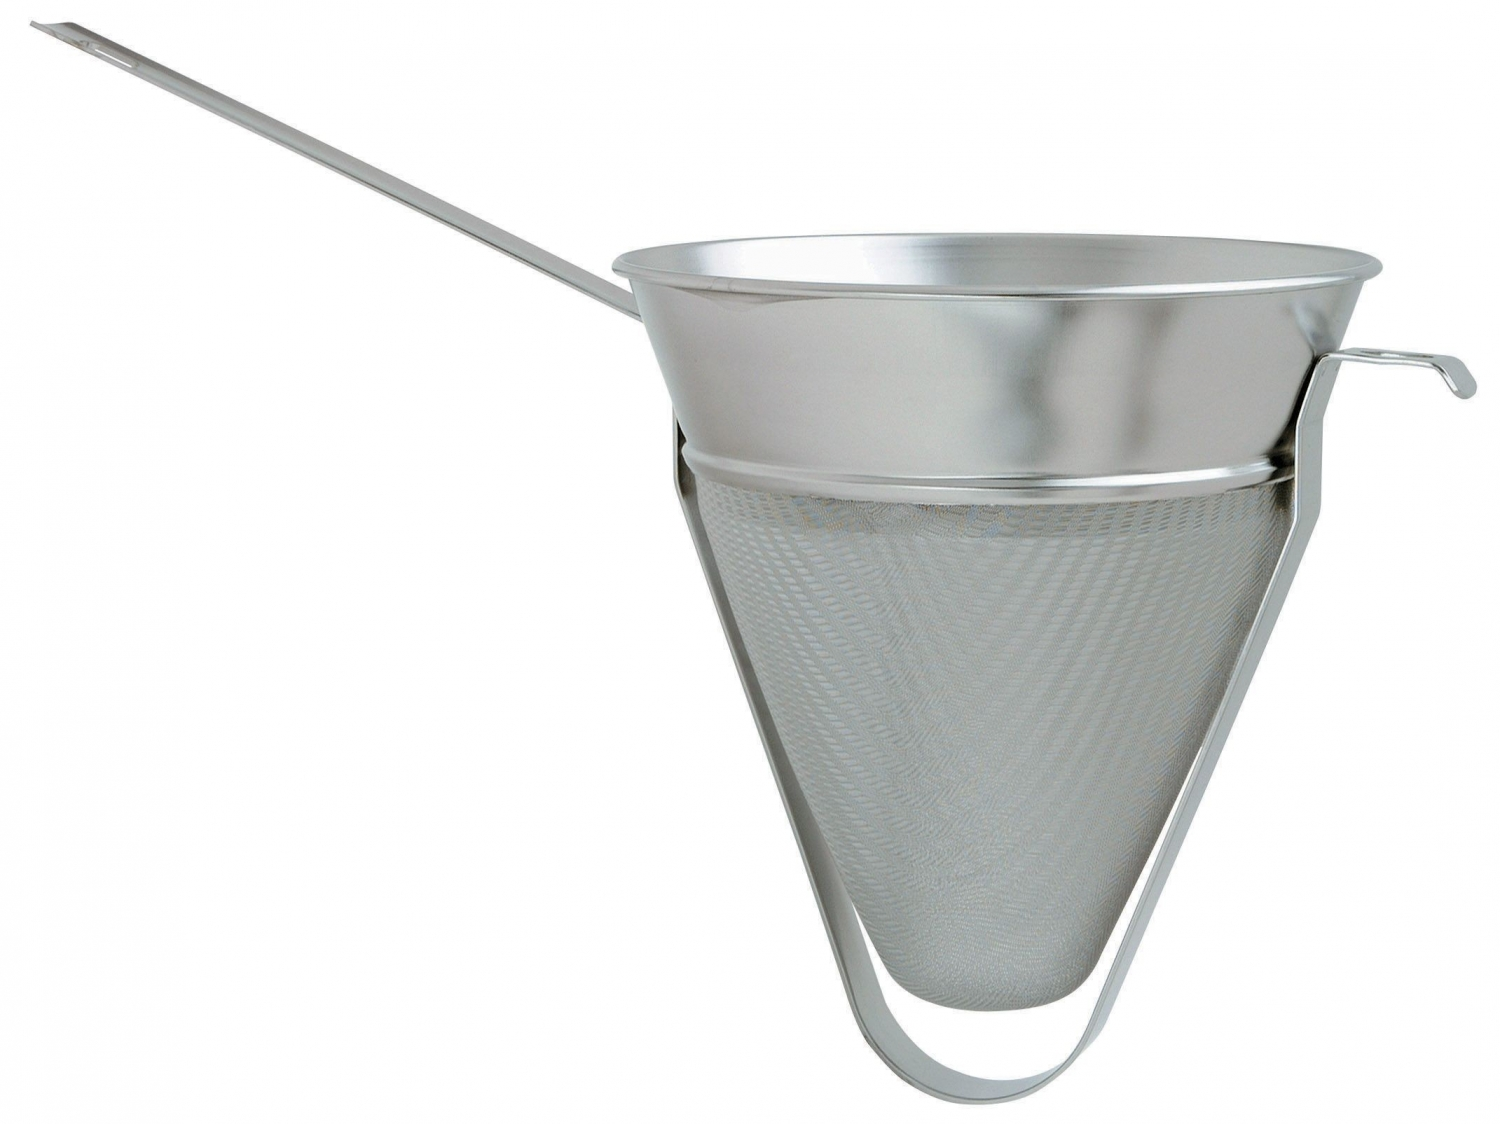 Johnson Rose 3858 Bouillon Strainer With 9